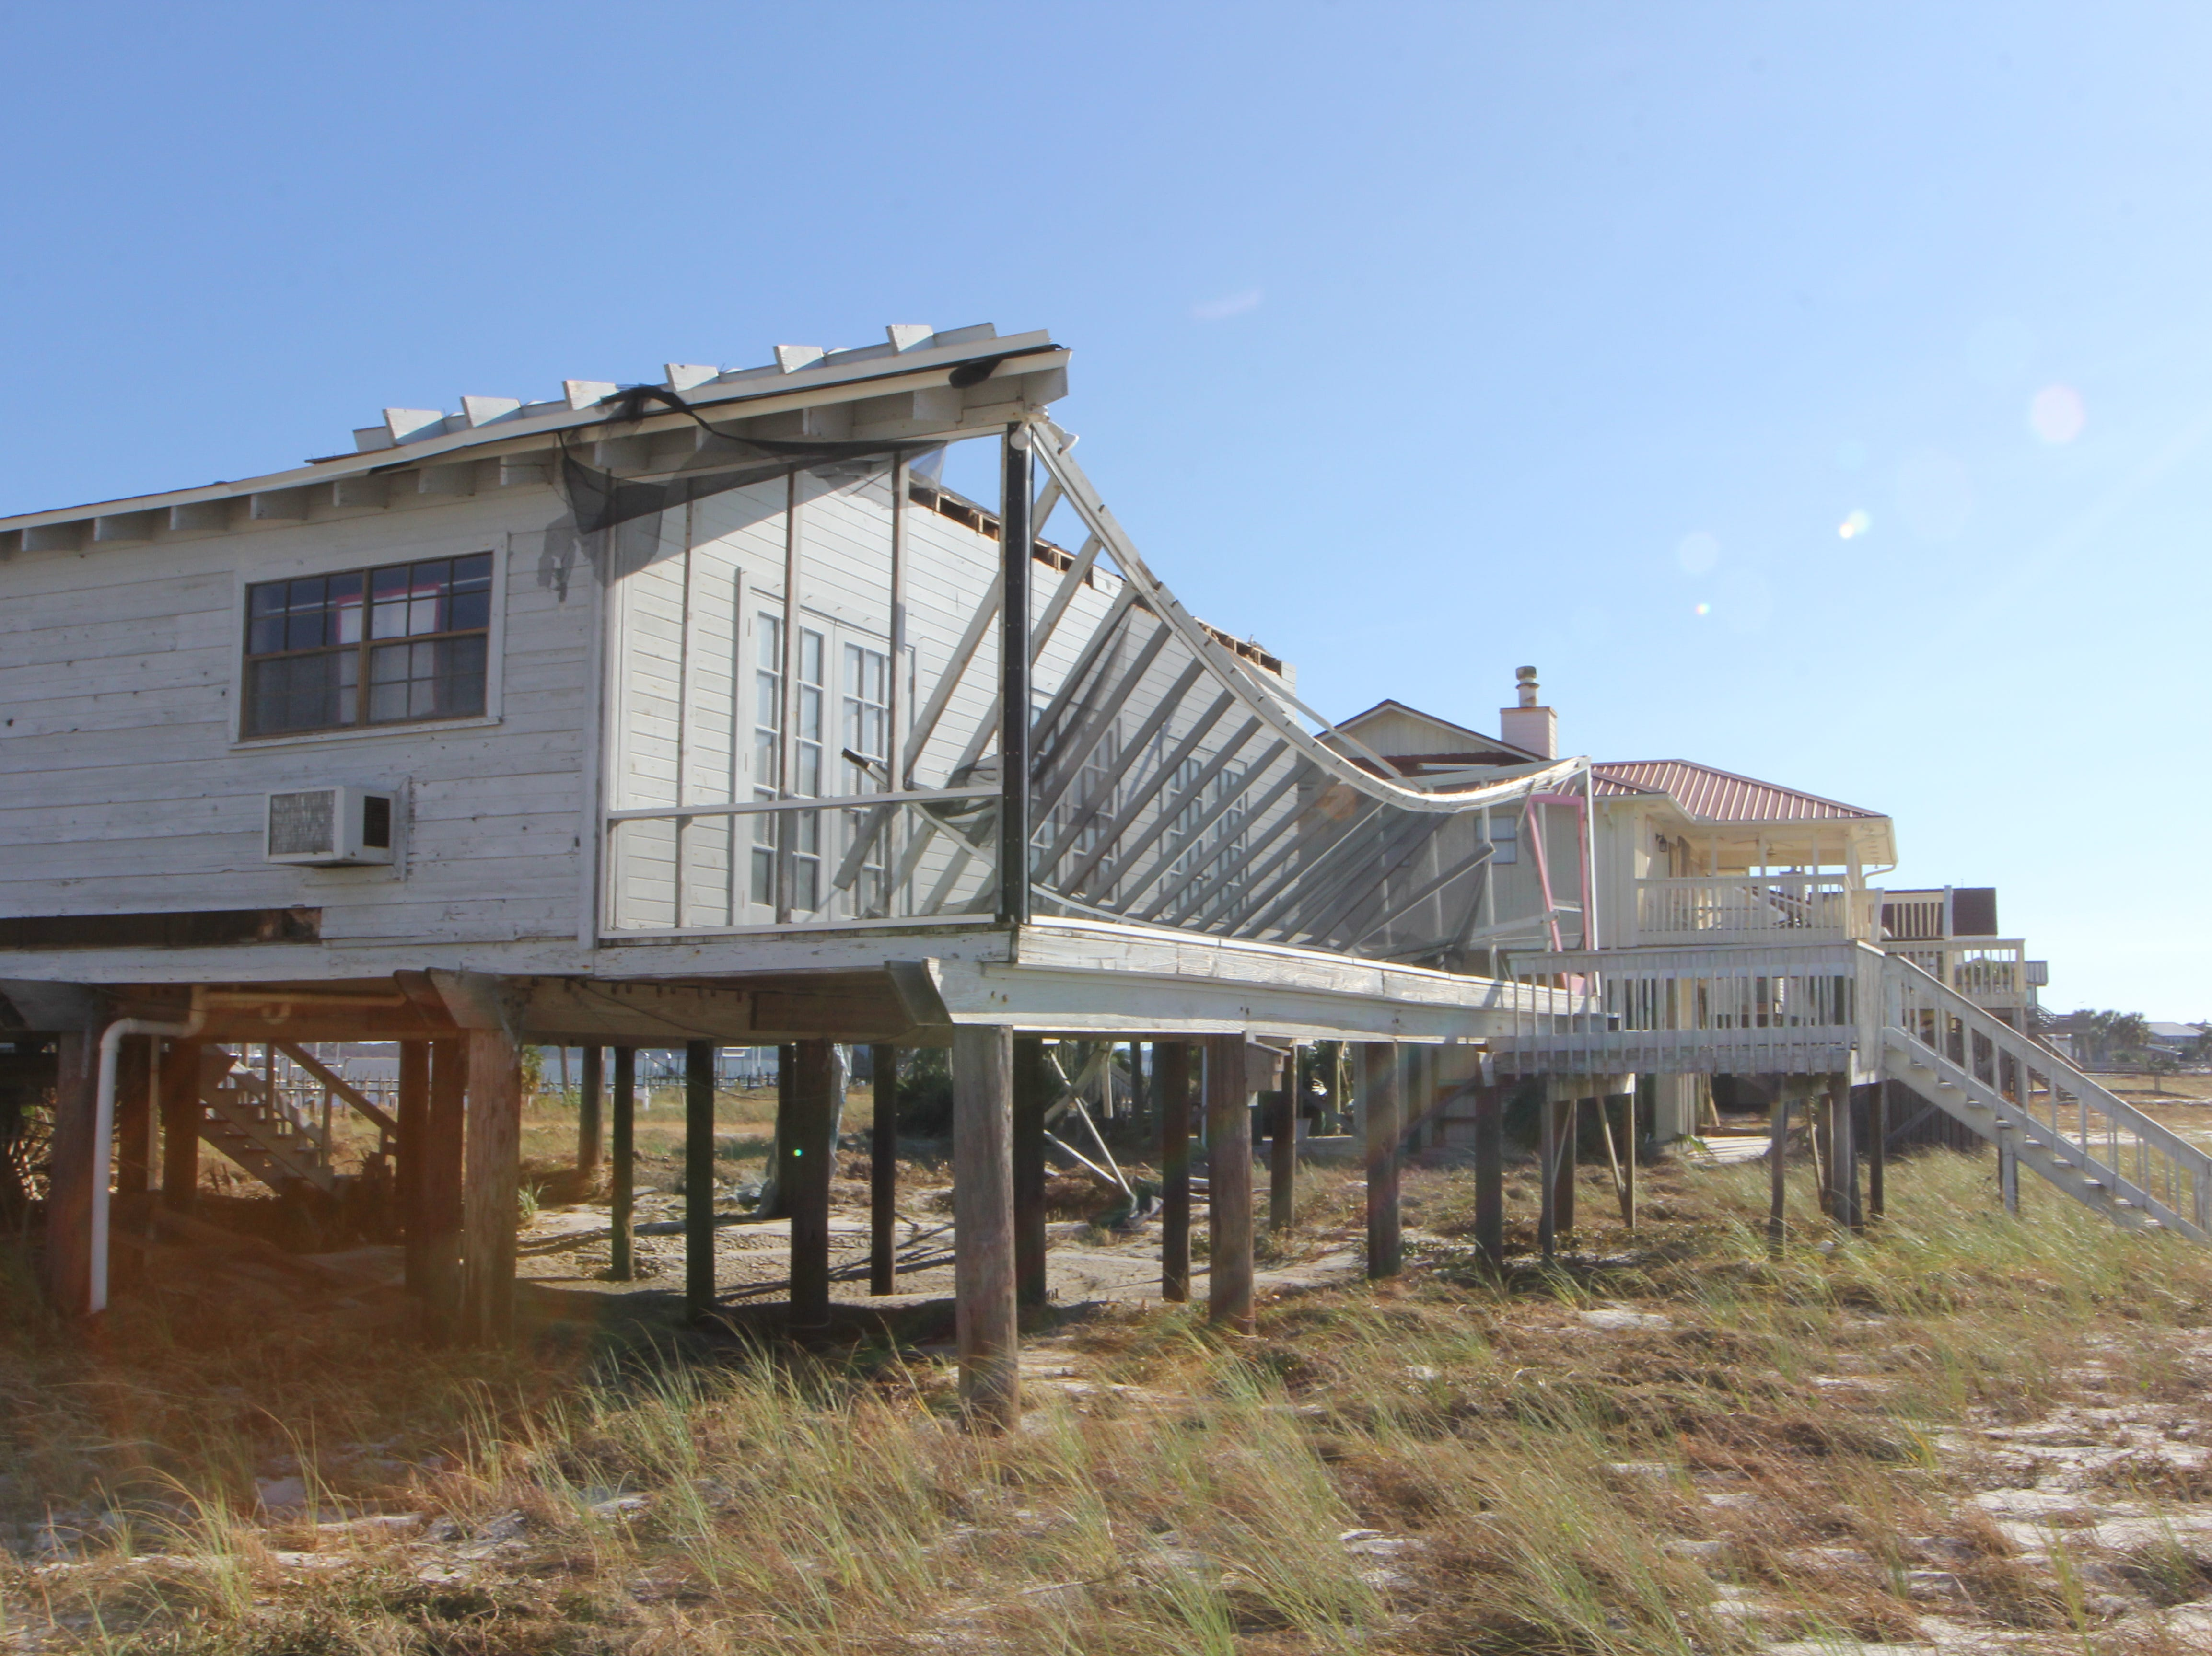 A beachfront home in Alligator Point suffered major damage during Hurricane Michael.